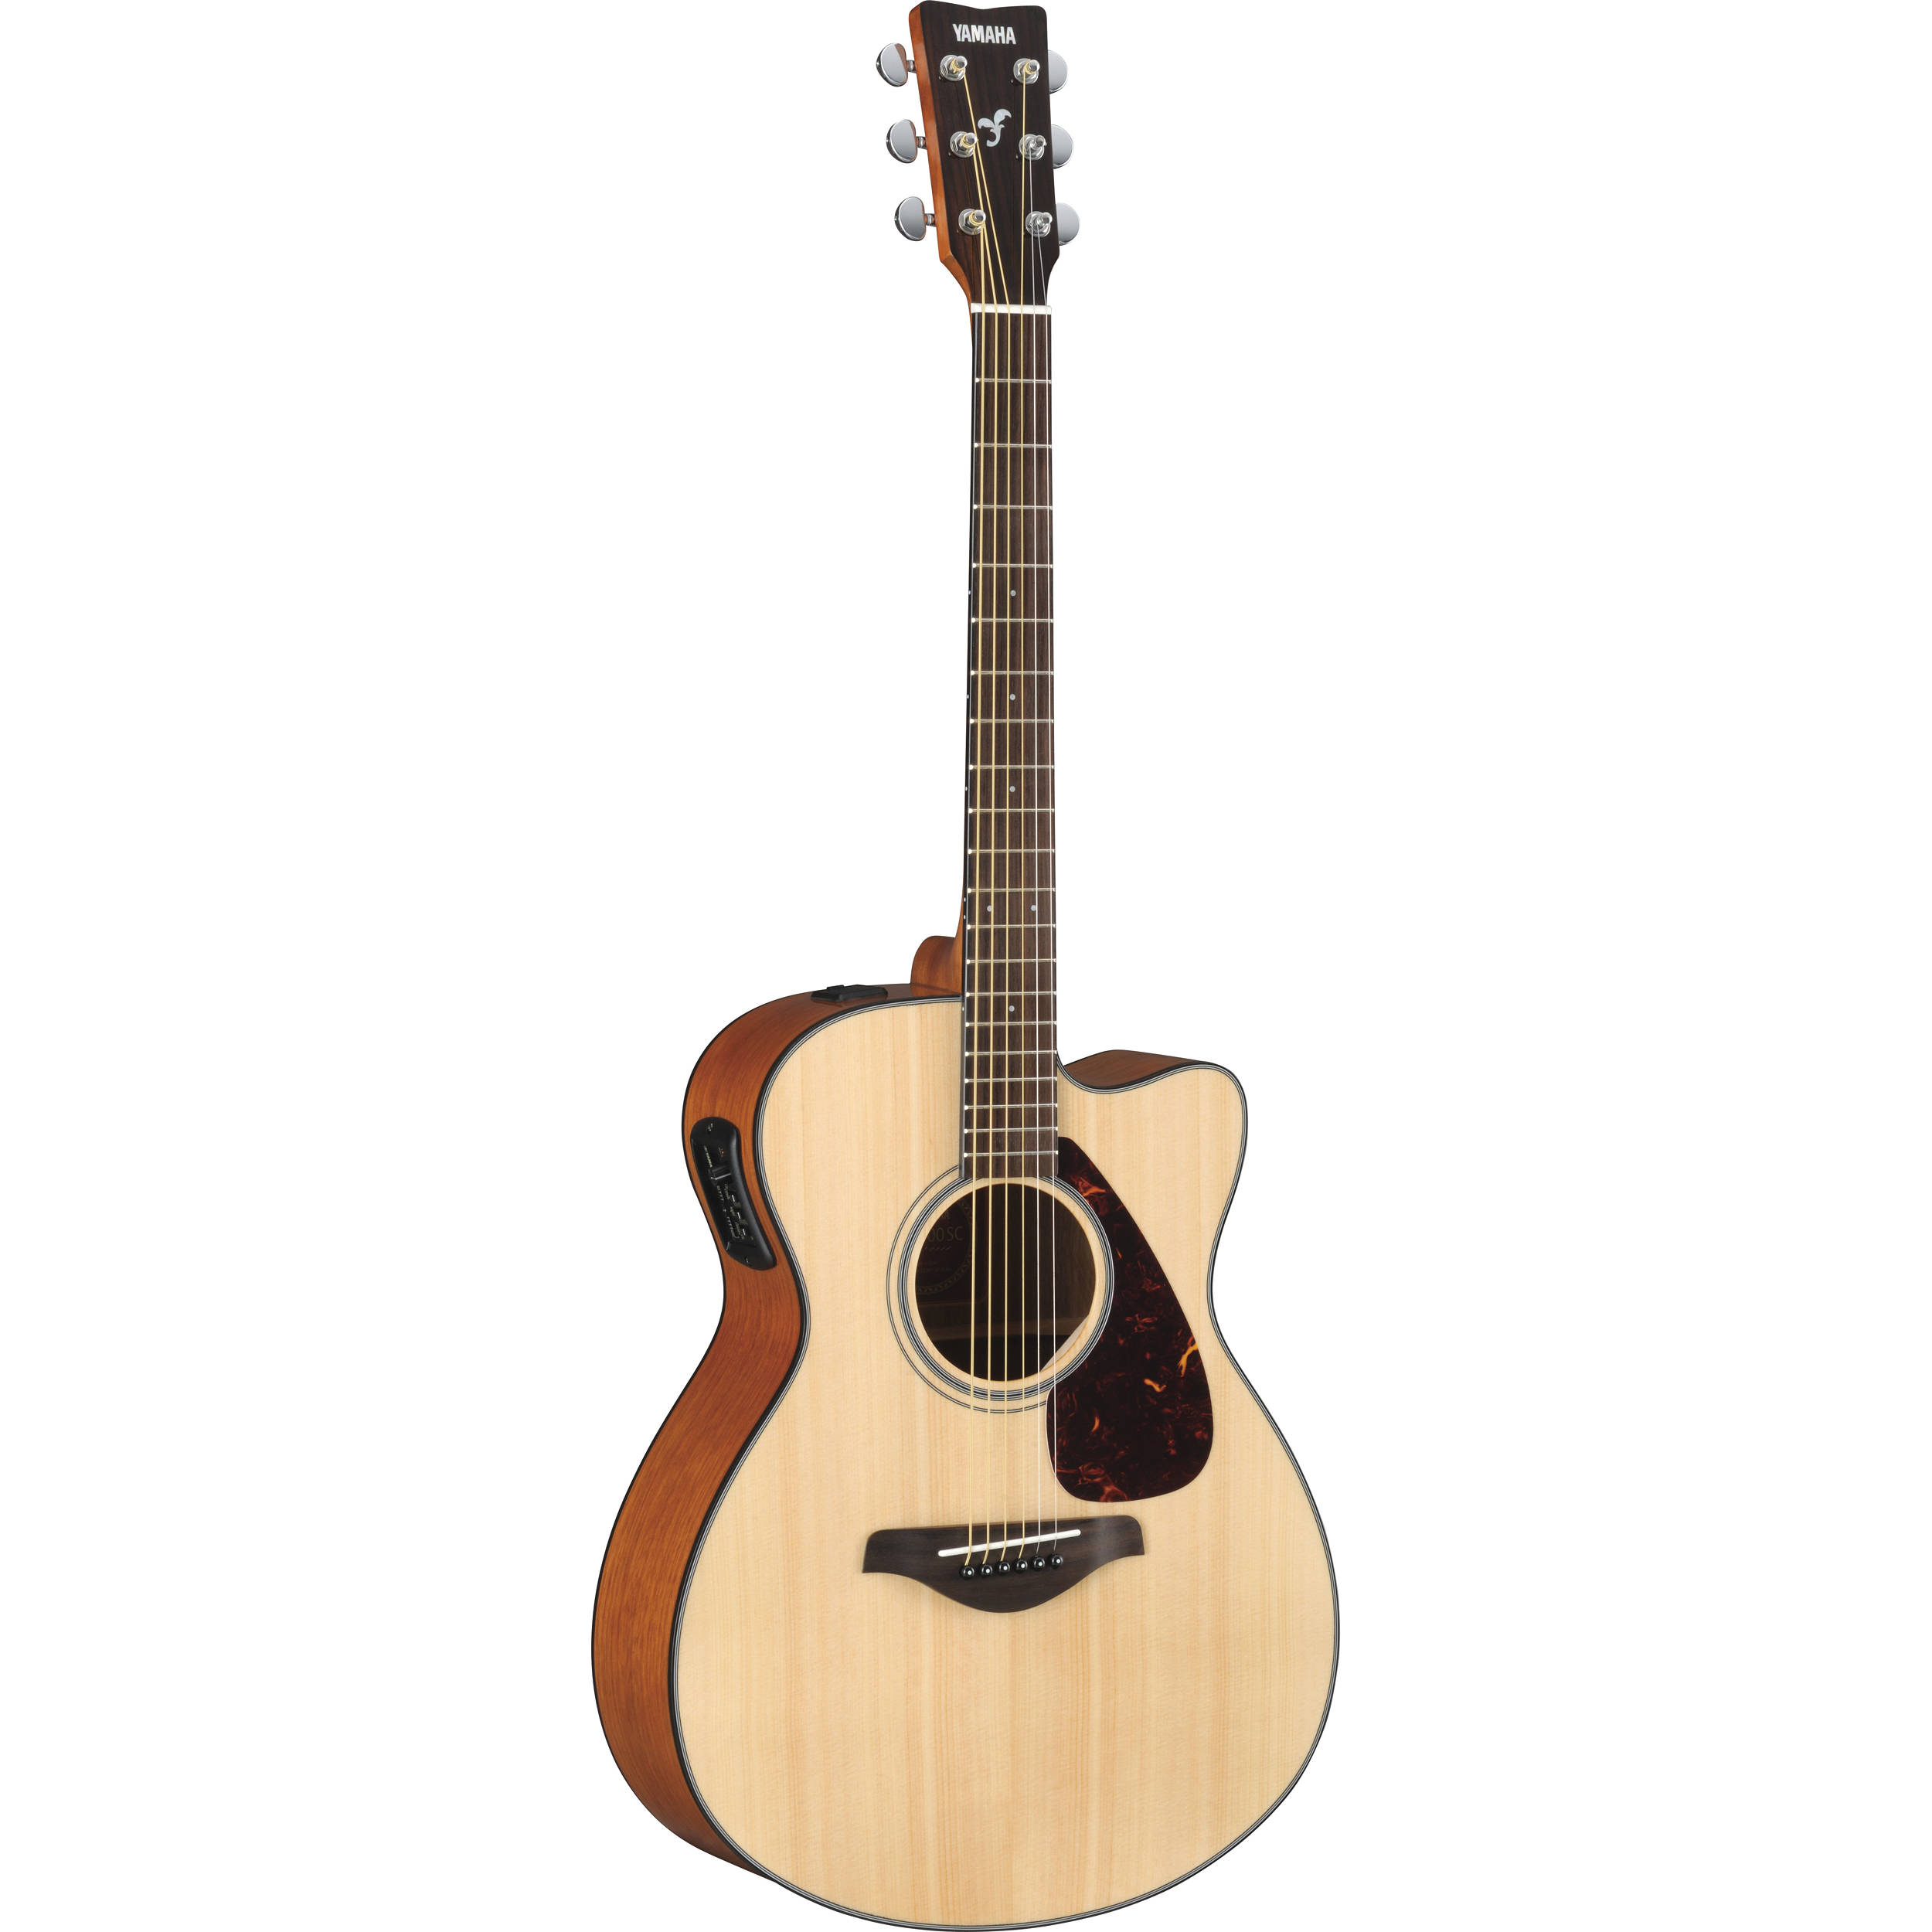 Yamaha Fsx Sc Acoustic Electric Guitar